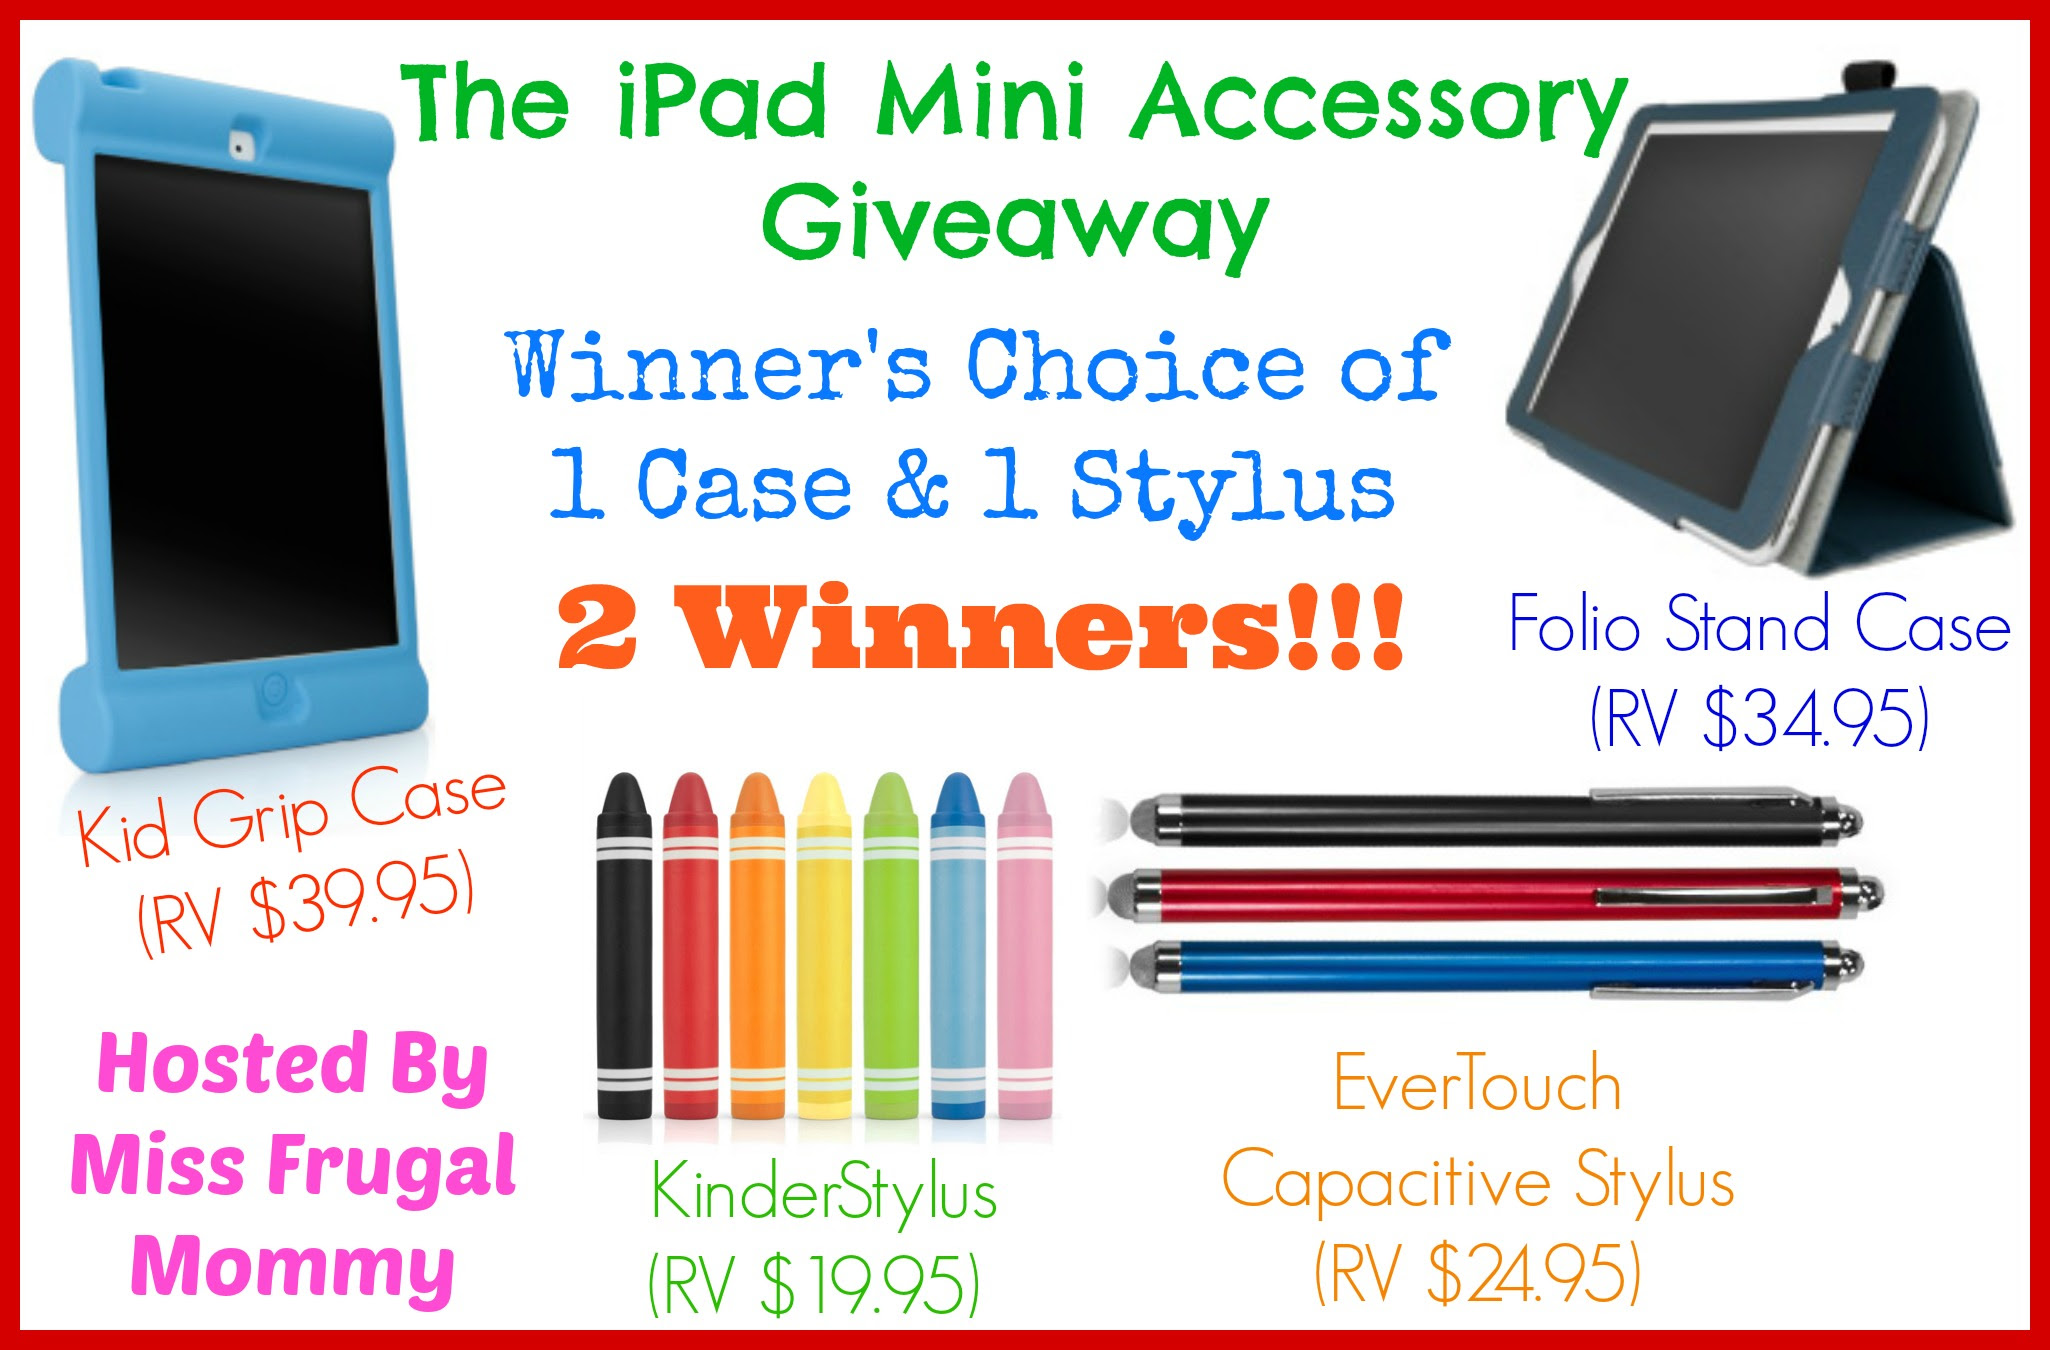 Enter to win the iPad Mini Accessory Giveaway. Ends 3/29.